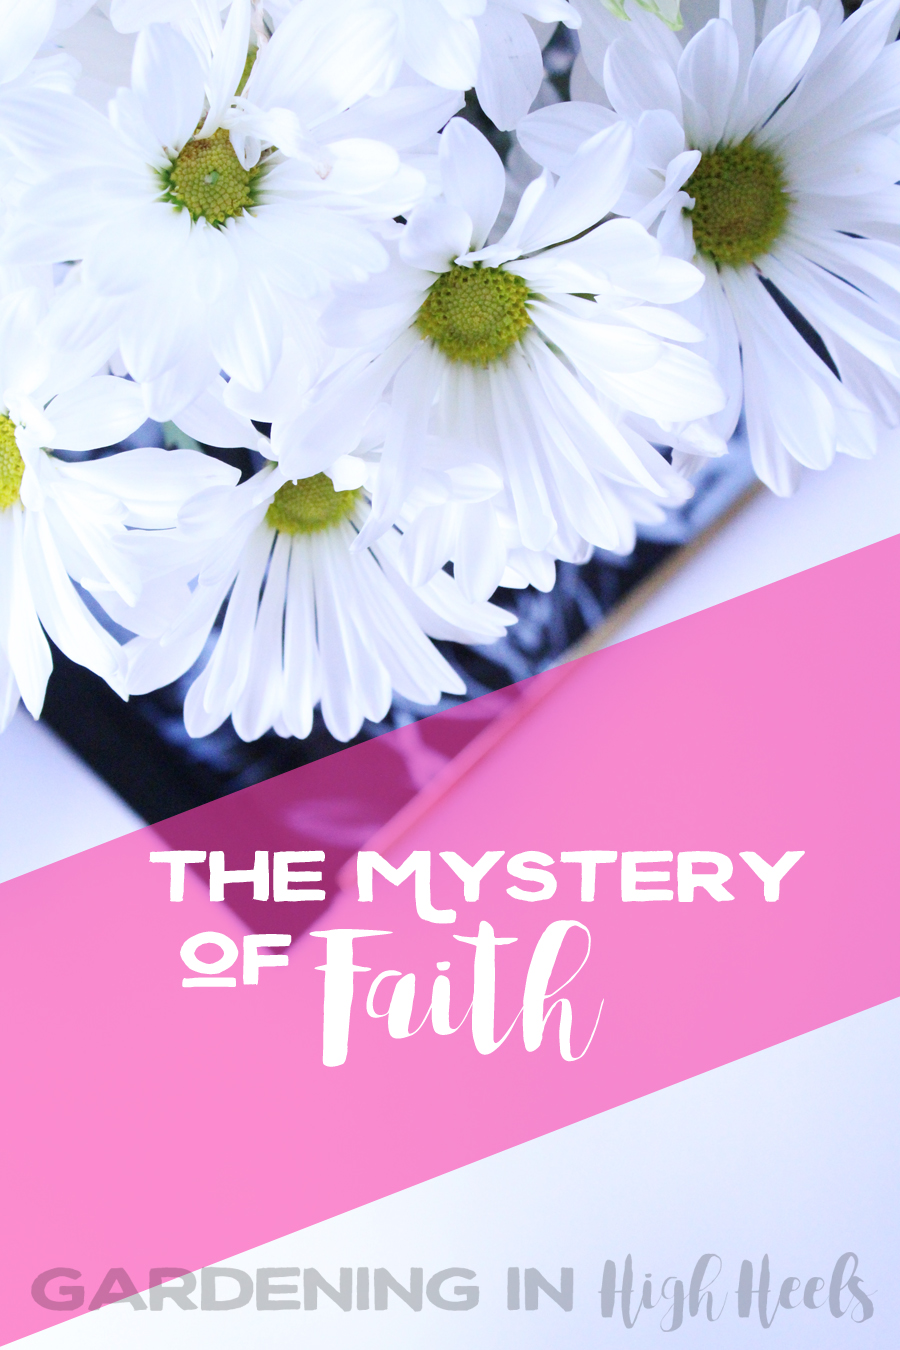 It's hard to keep the faith, especially when you're having a downward vibration kind of day. What do you do to keep the faith alive for you? Really interesting perspective!